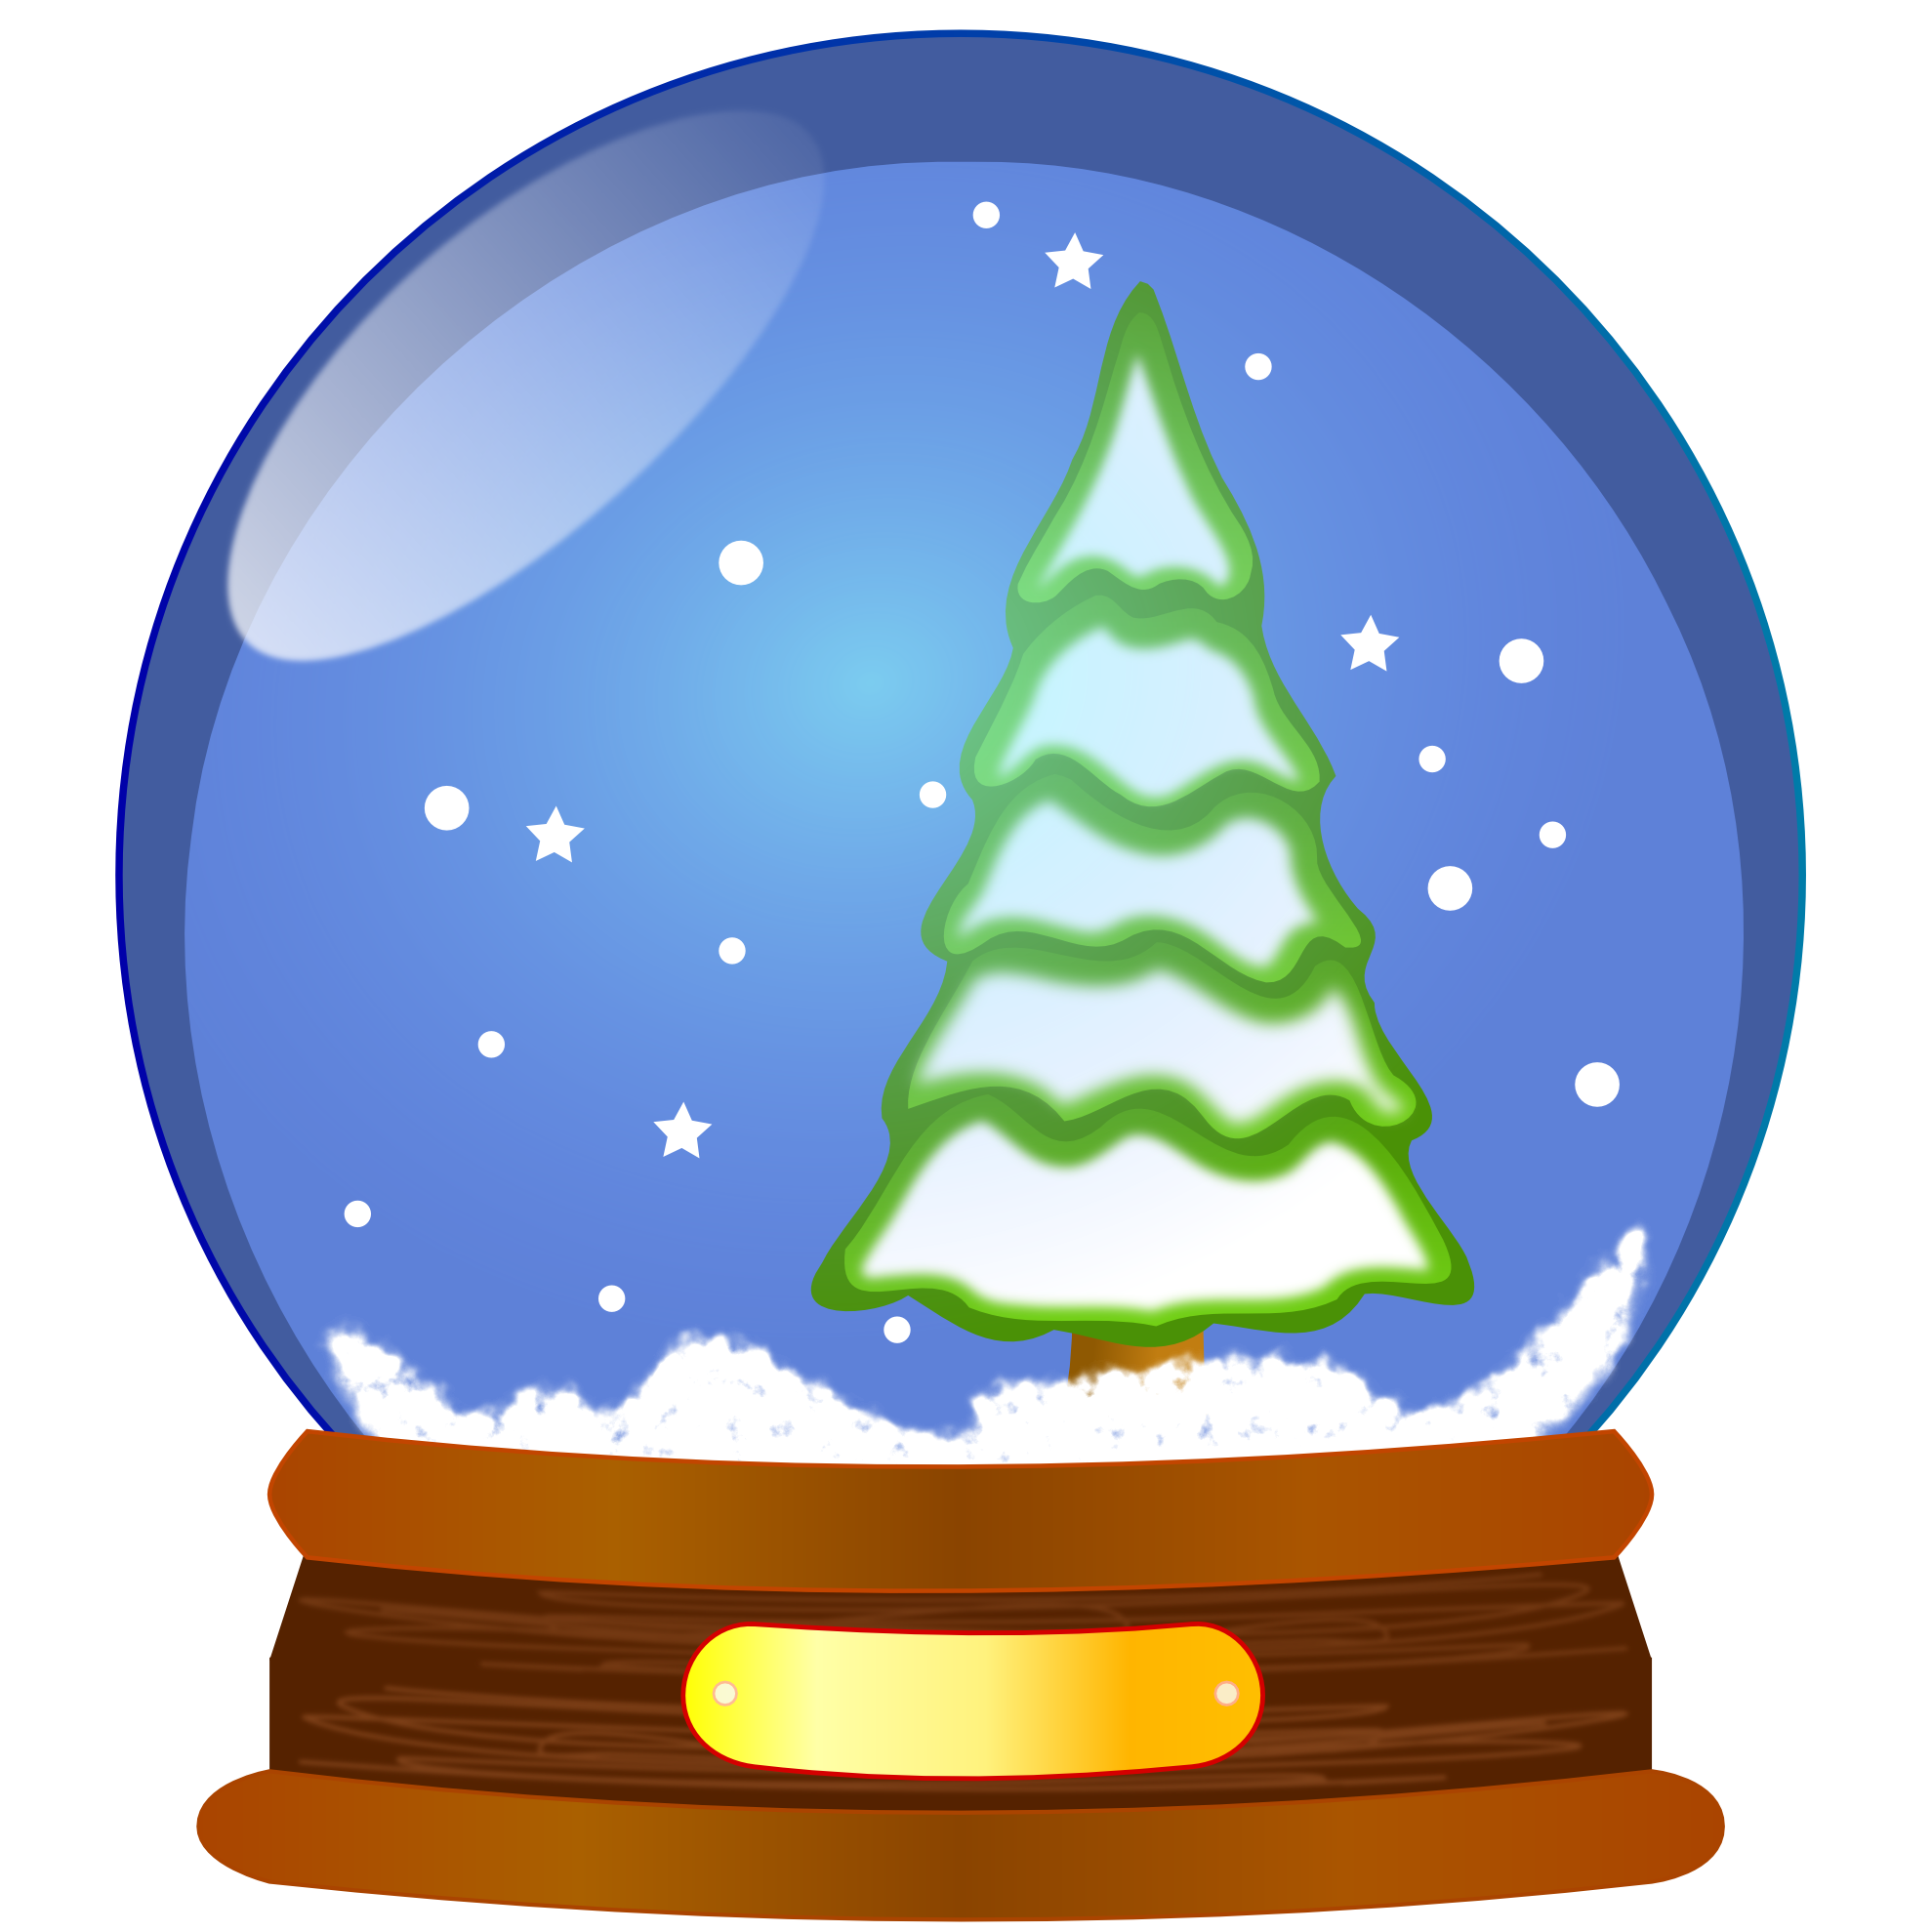 Winter Snow Globe Clipart.